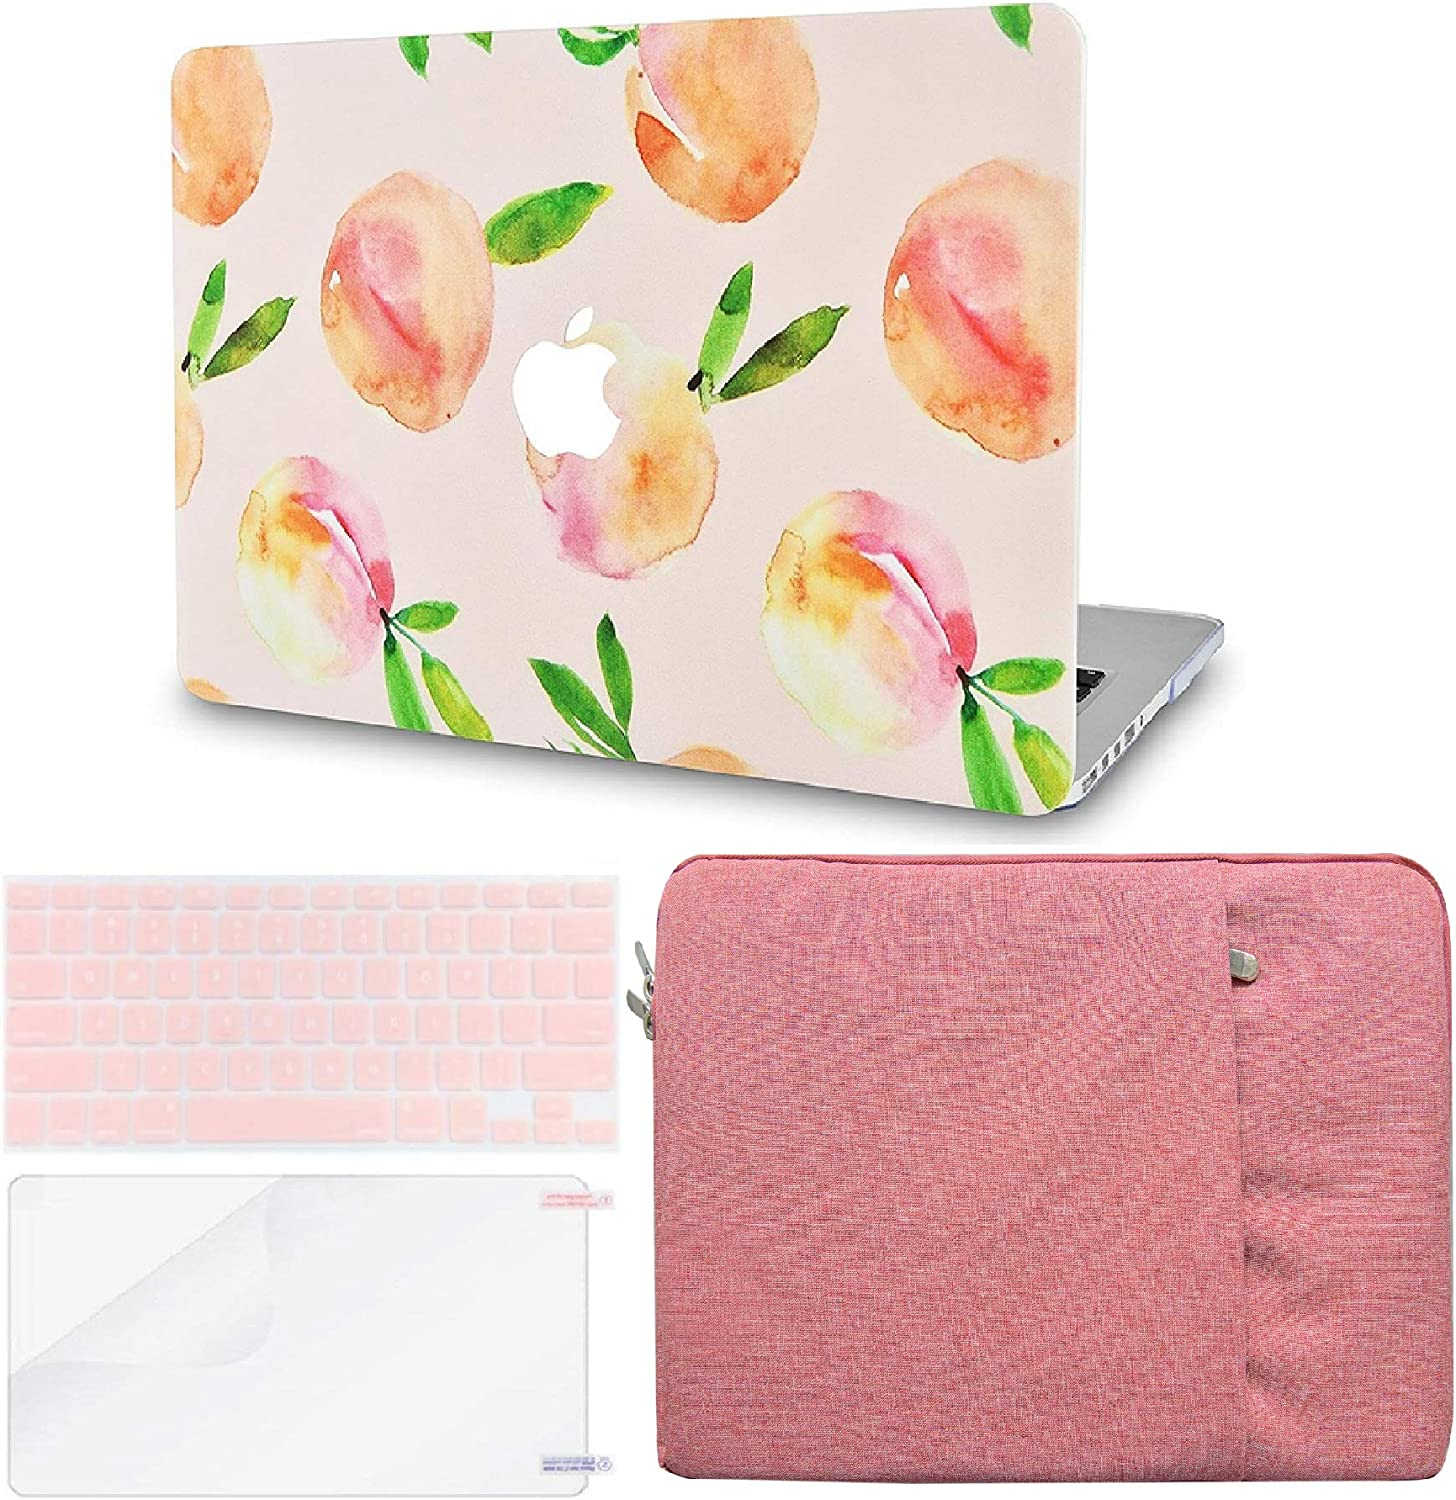 LuvCase 4in1 Laptop Case for MacBook Pro 13